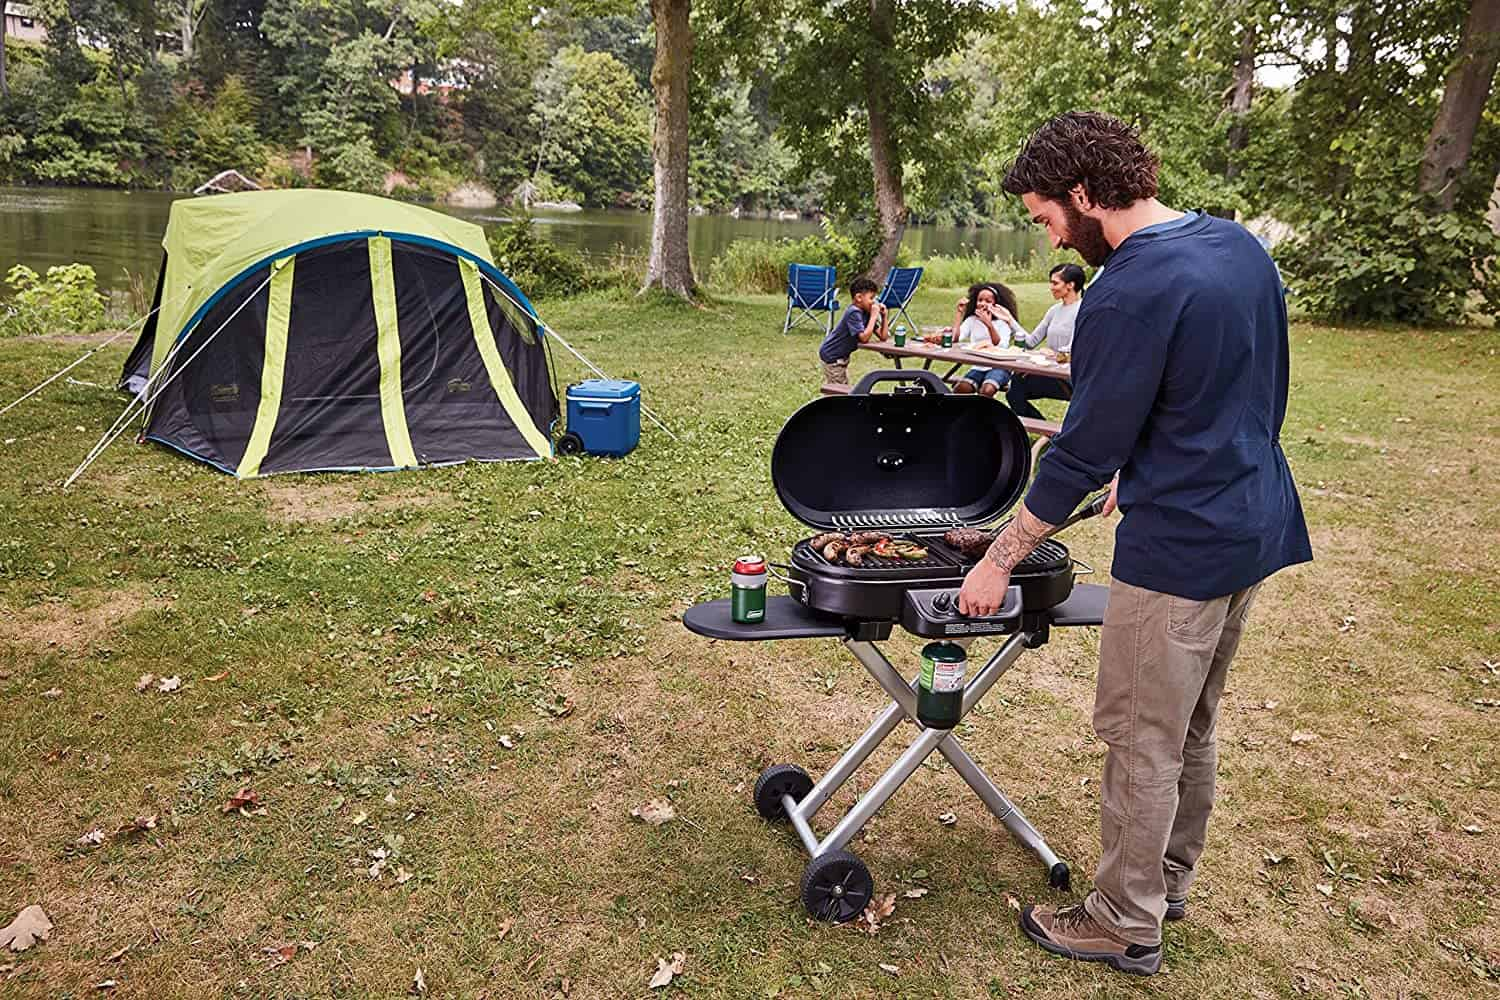 Best overall portable camping grill- Coleman RoadTrip 285